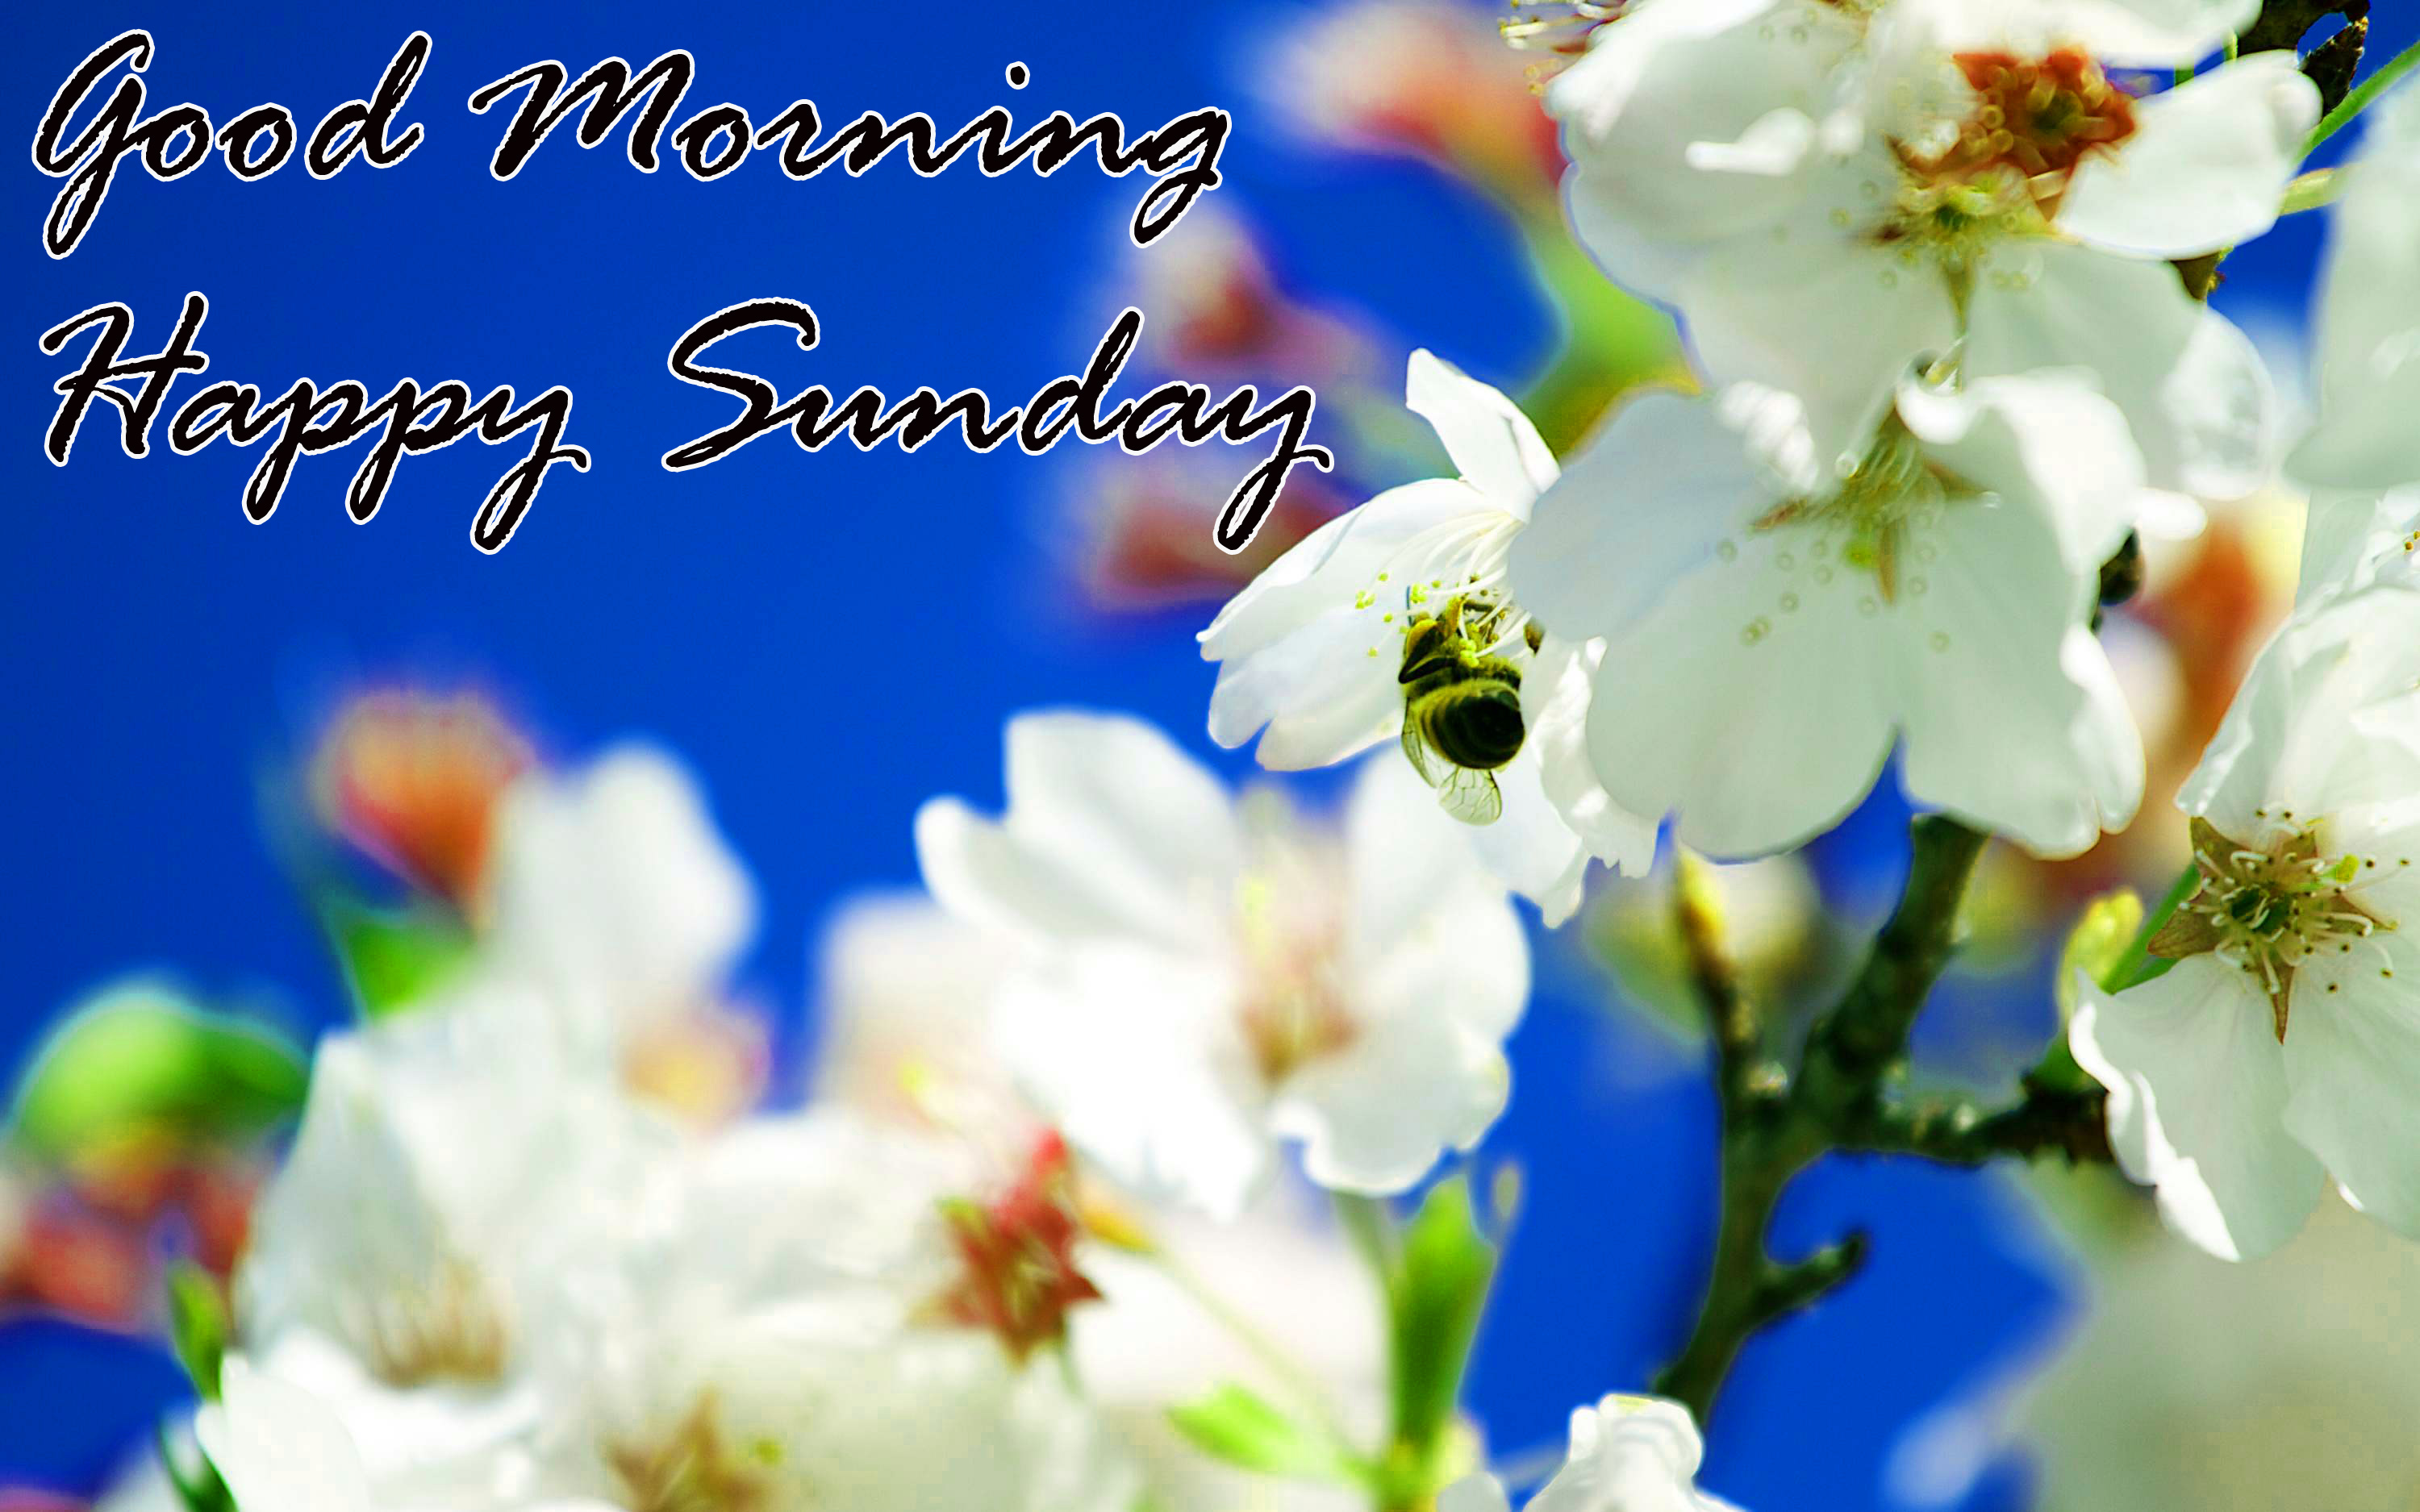 Sunday Good Morning Images Wallpaper Pictures Download In HD